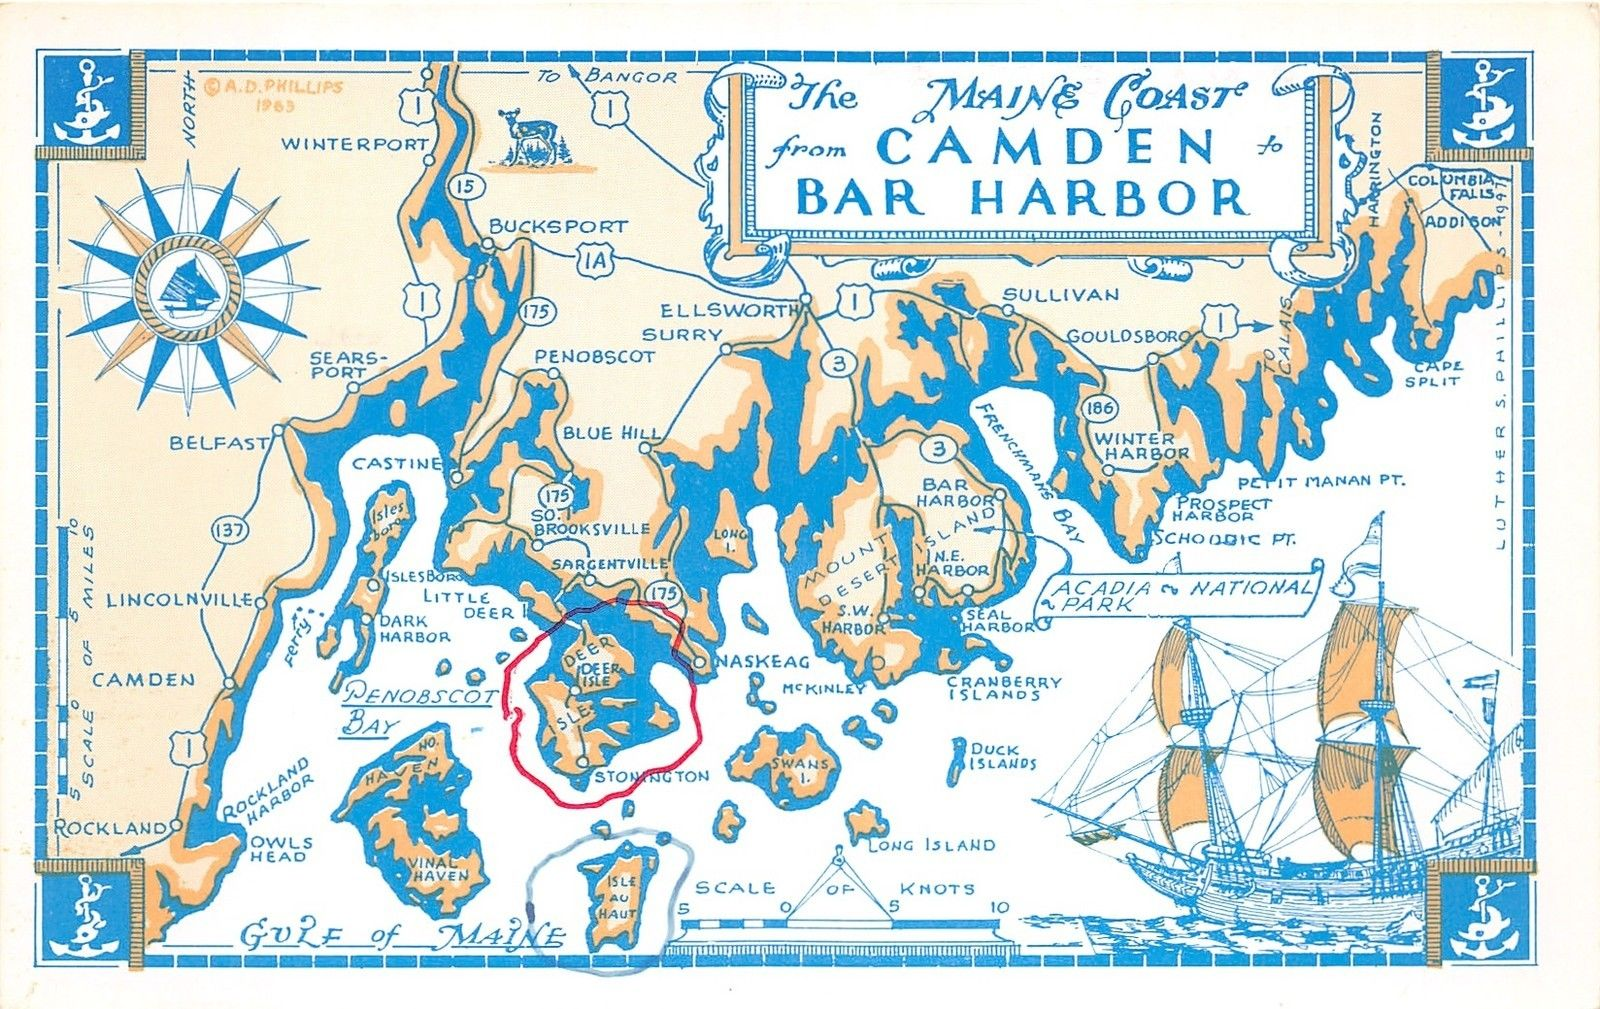 Map of Maine Coast-Camden to Bar Harbor~Note on Back~1960s ... Maine Coast Map on bar harbor map, new orleans map, maine storm map, maine mall portland maine map, state of maine map, camden maine map, maine woods map, maine harbor map, maine desert map, maine western map, maine map with latitude and longitude, acadia maine map, maine bay map, midcoast maine map, maine north map, gorham maine street map, maine school districts map, maine oregon map, blue hill maine map, maine east map,